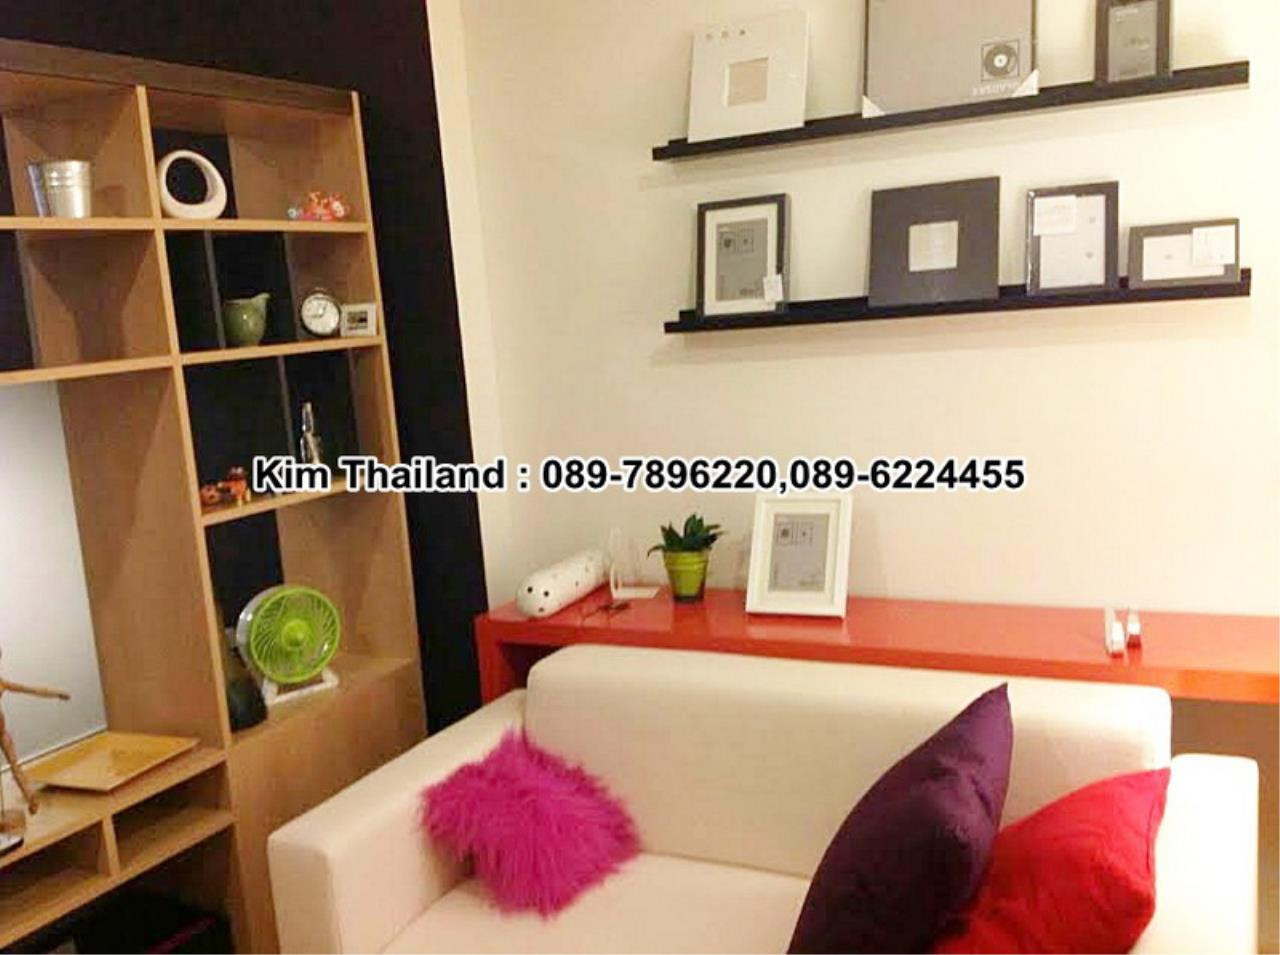 BKKcondorental Agency's For rent, Condo U Delight @ Bang Sue Station., Area 27 sq.m. 1 bedroom.Rental price 8000 THB per month. 7